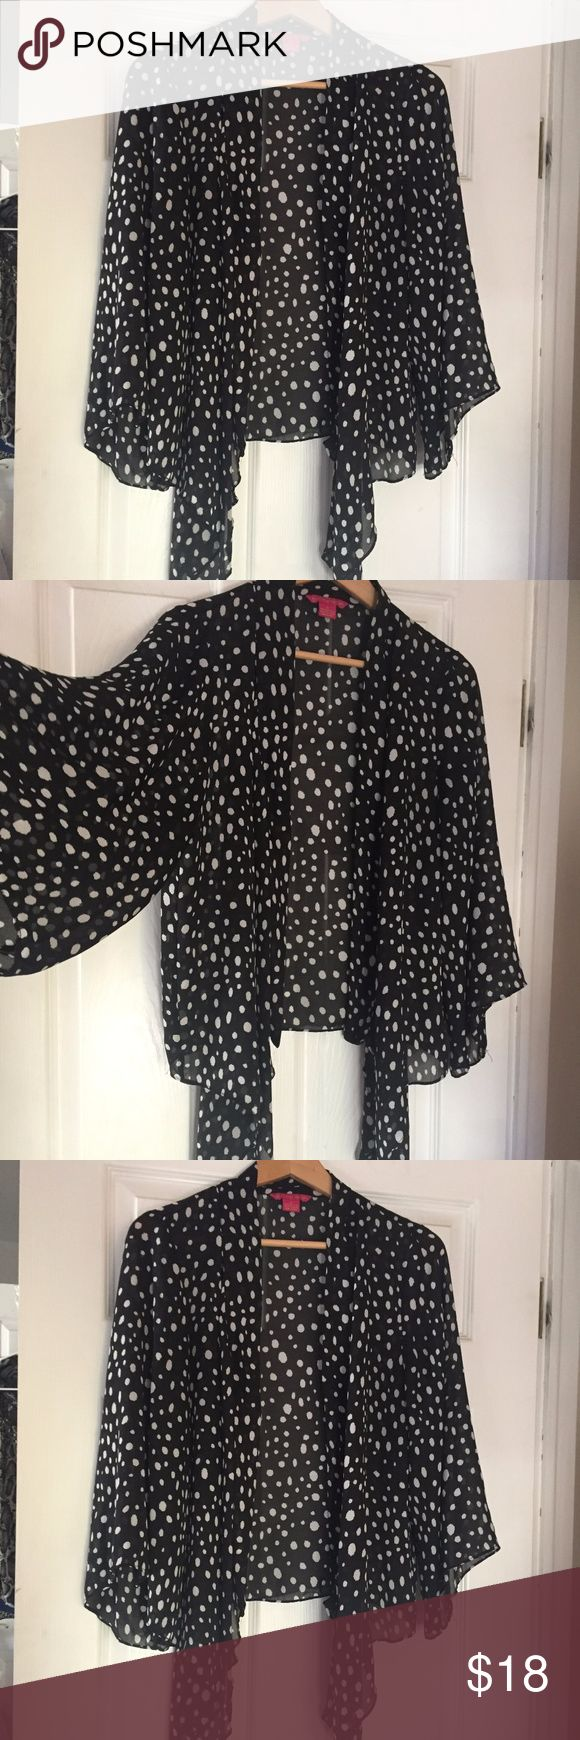 Black & White Flyaway Cardigan Blouse, High Low Sunny Leigh Size Medium 100% Polyester Batwing Sleeves High Low Hem Open, whimsical fly away cardigan.  Black & White Polka Dot Sunny Leigh Tops